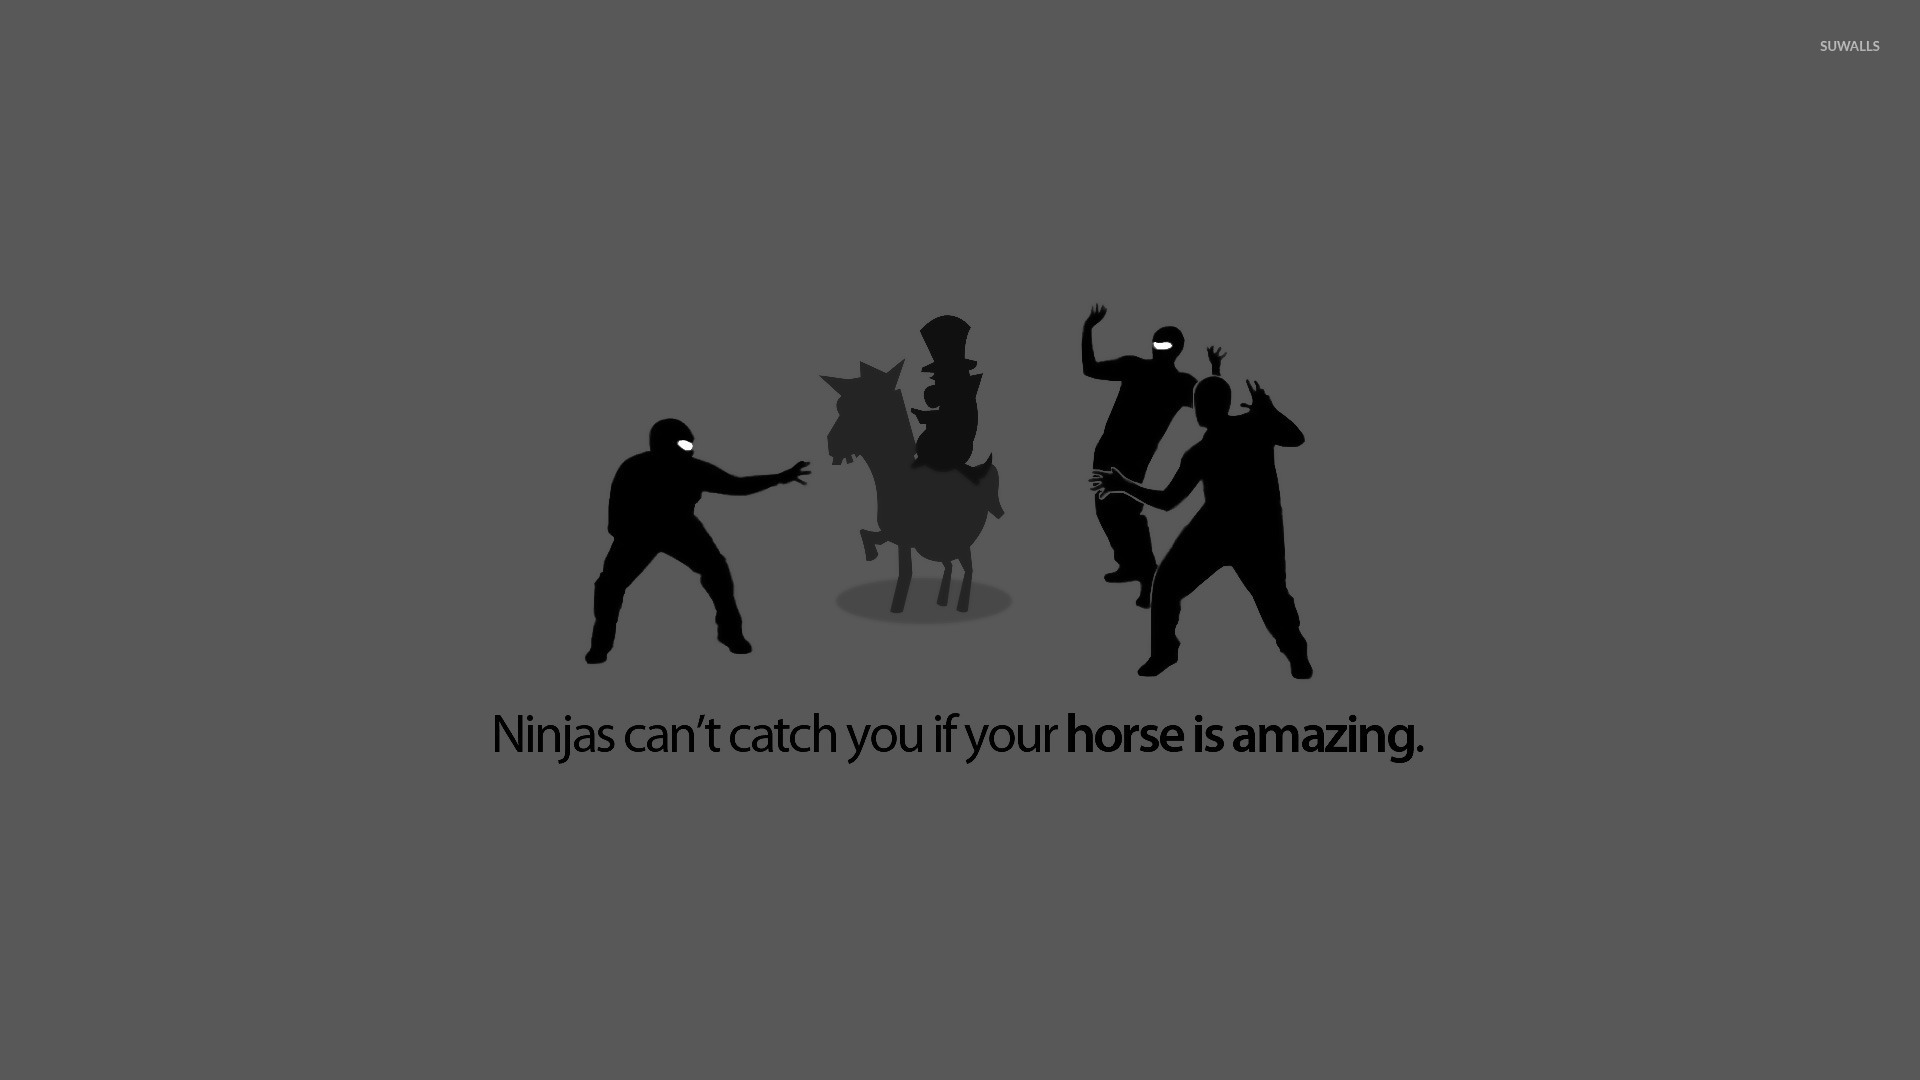 Ninjas cant catch you if your horse is amazing wallpaper   Meme 1920x1080